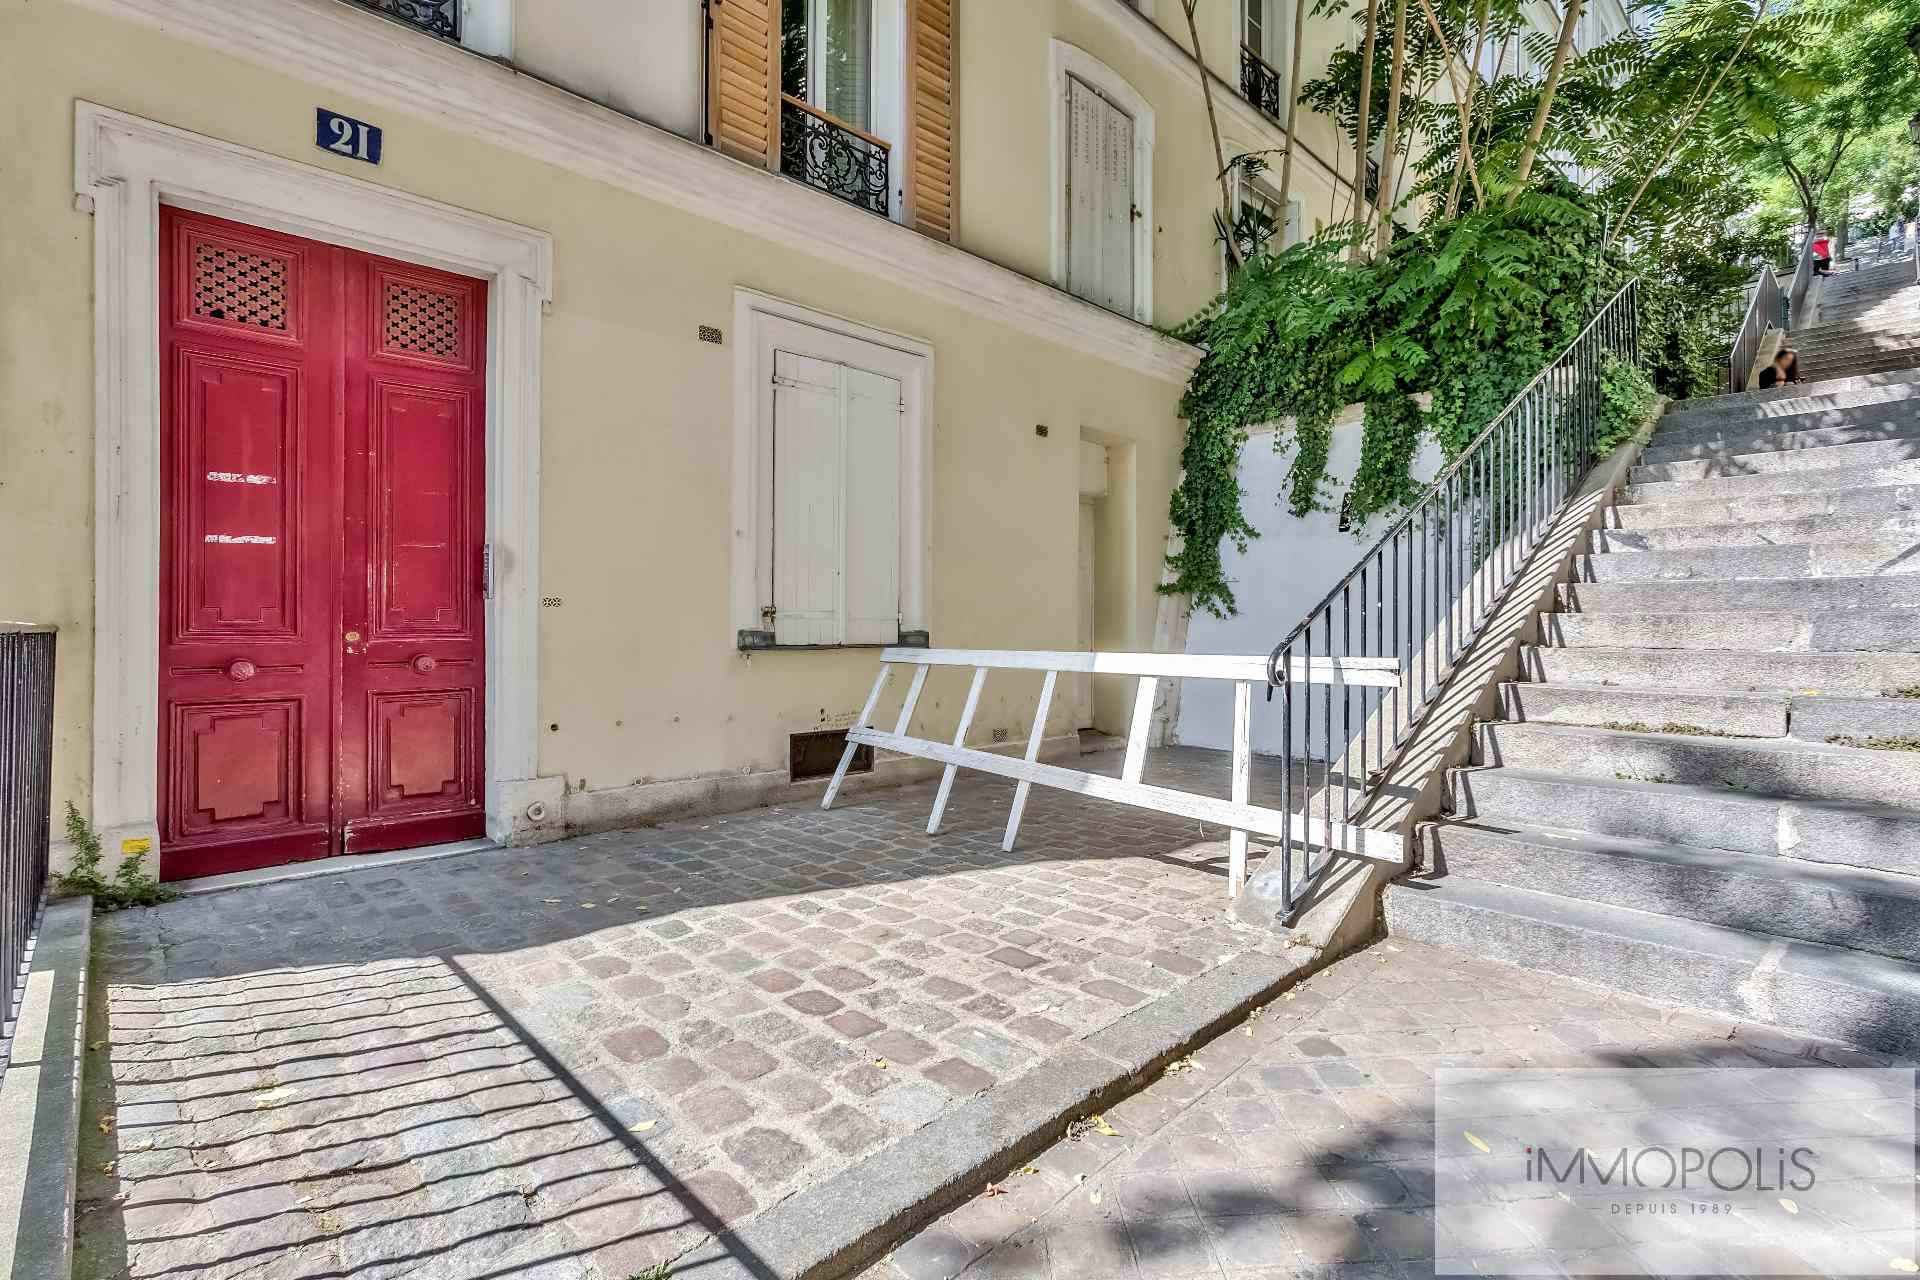 Soundproof workshop / Open space of approximately 49 M² well located in Montmartre! 5